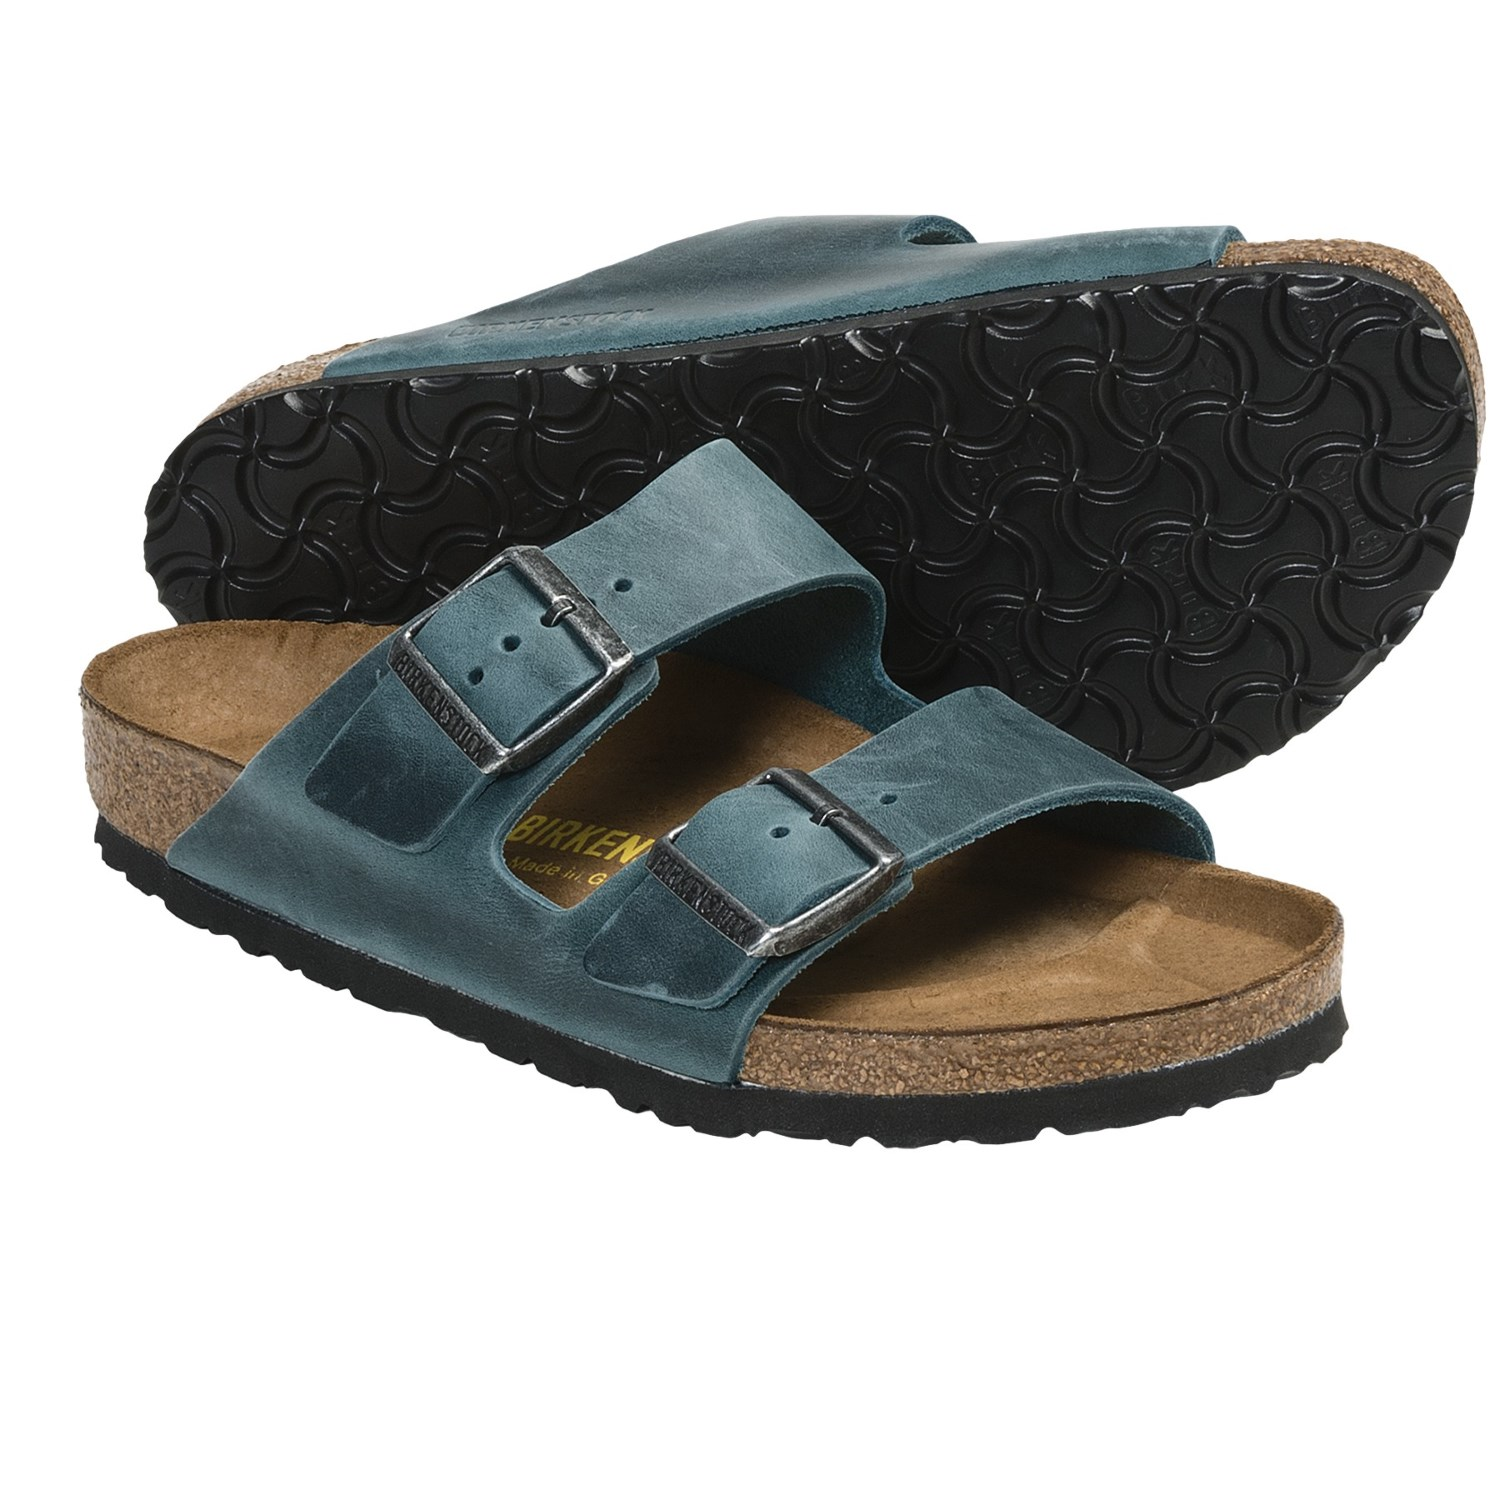 Birkenstock Arizona Sandals Leather For Men And Women In Turquoise